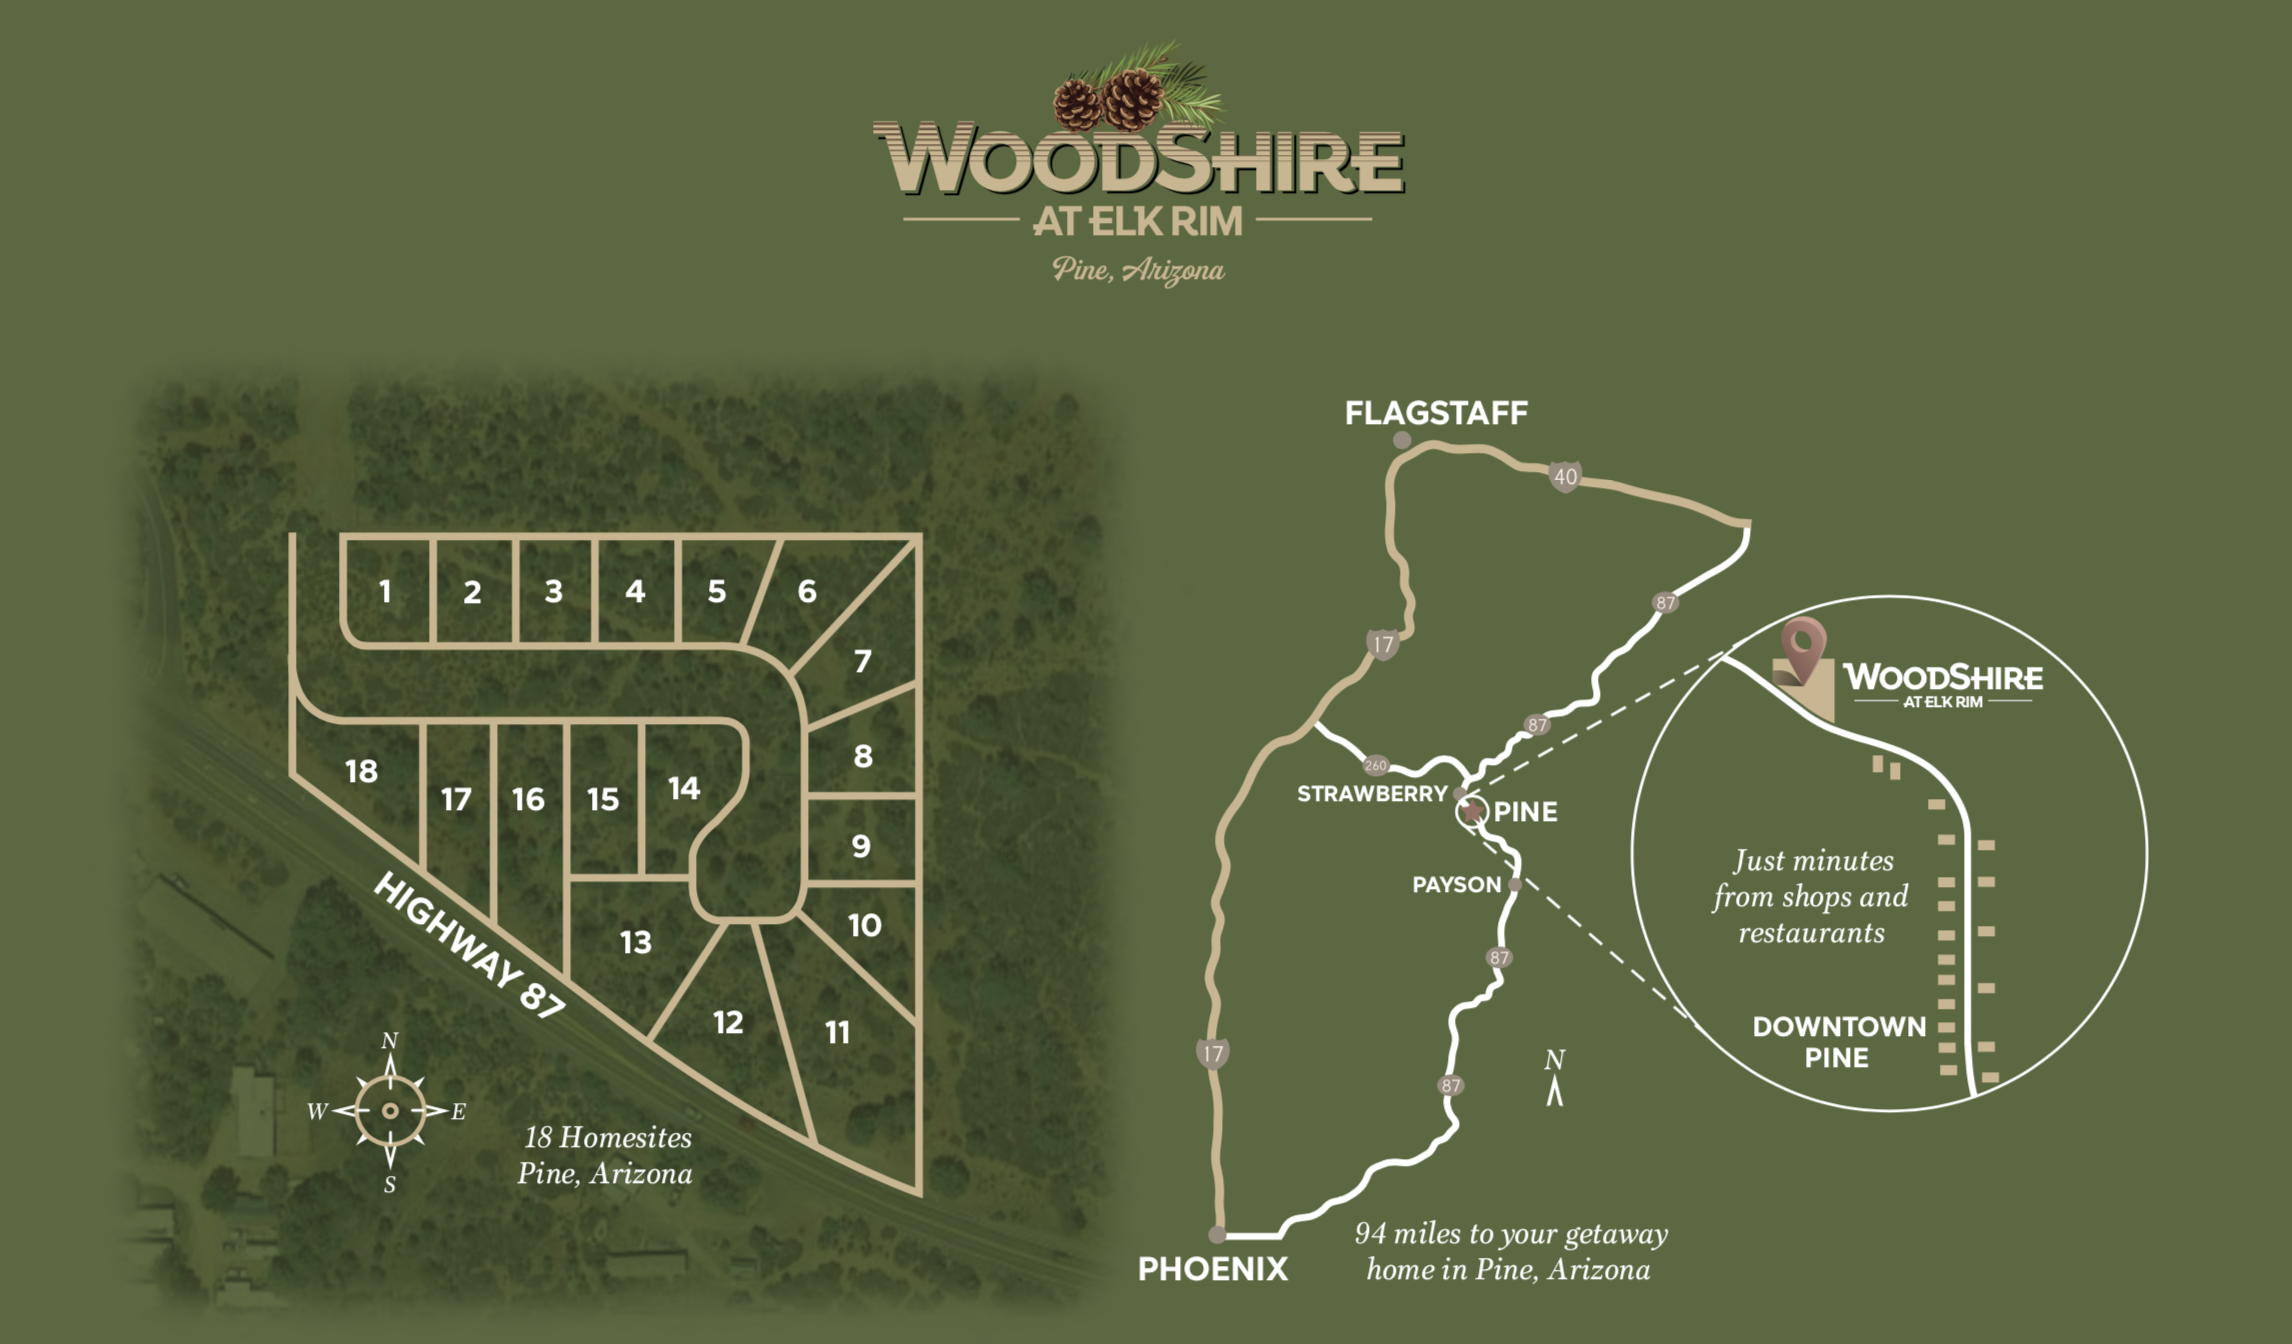 Pine, Arizona local map - WoodShire at Elk Rim is tucked into the woods, conveniently located minutes from downtown Pine